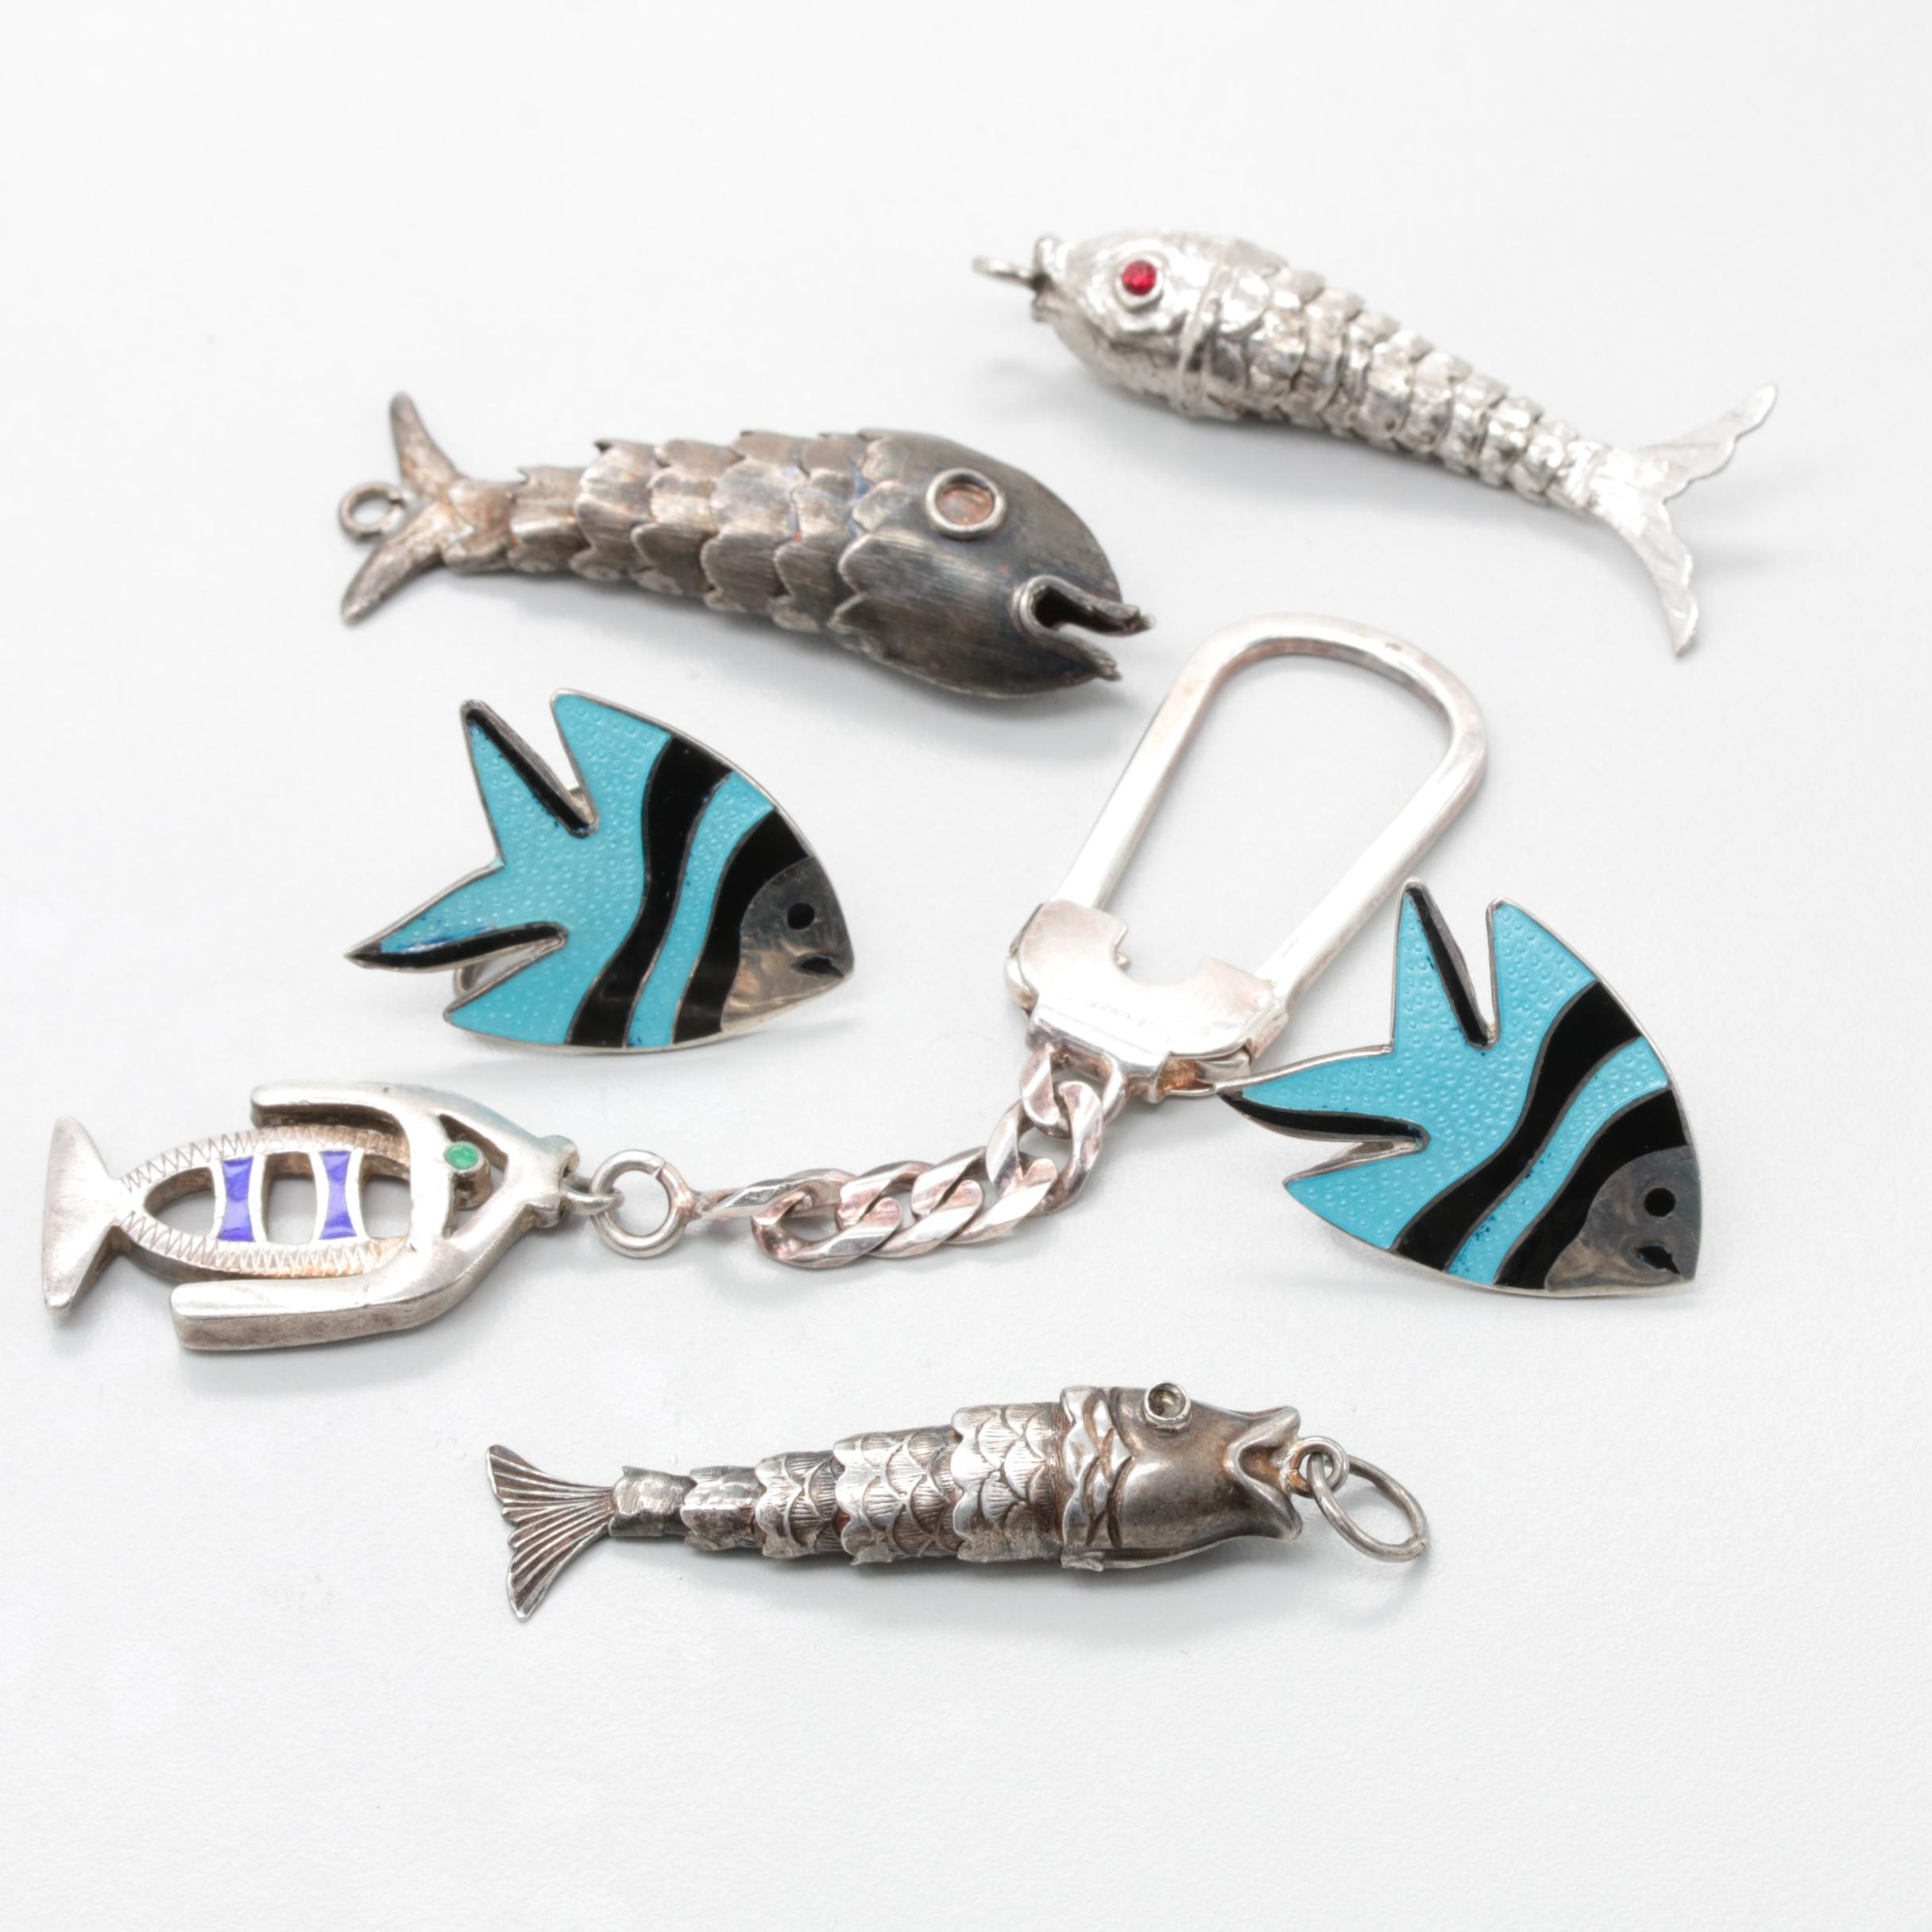 Sterling Silver Aquatic Themed Jewelry Selection Including Enamel and Glass